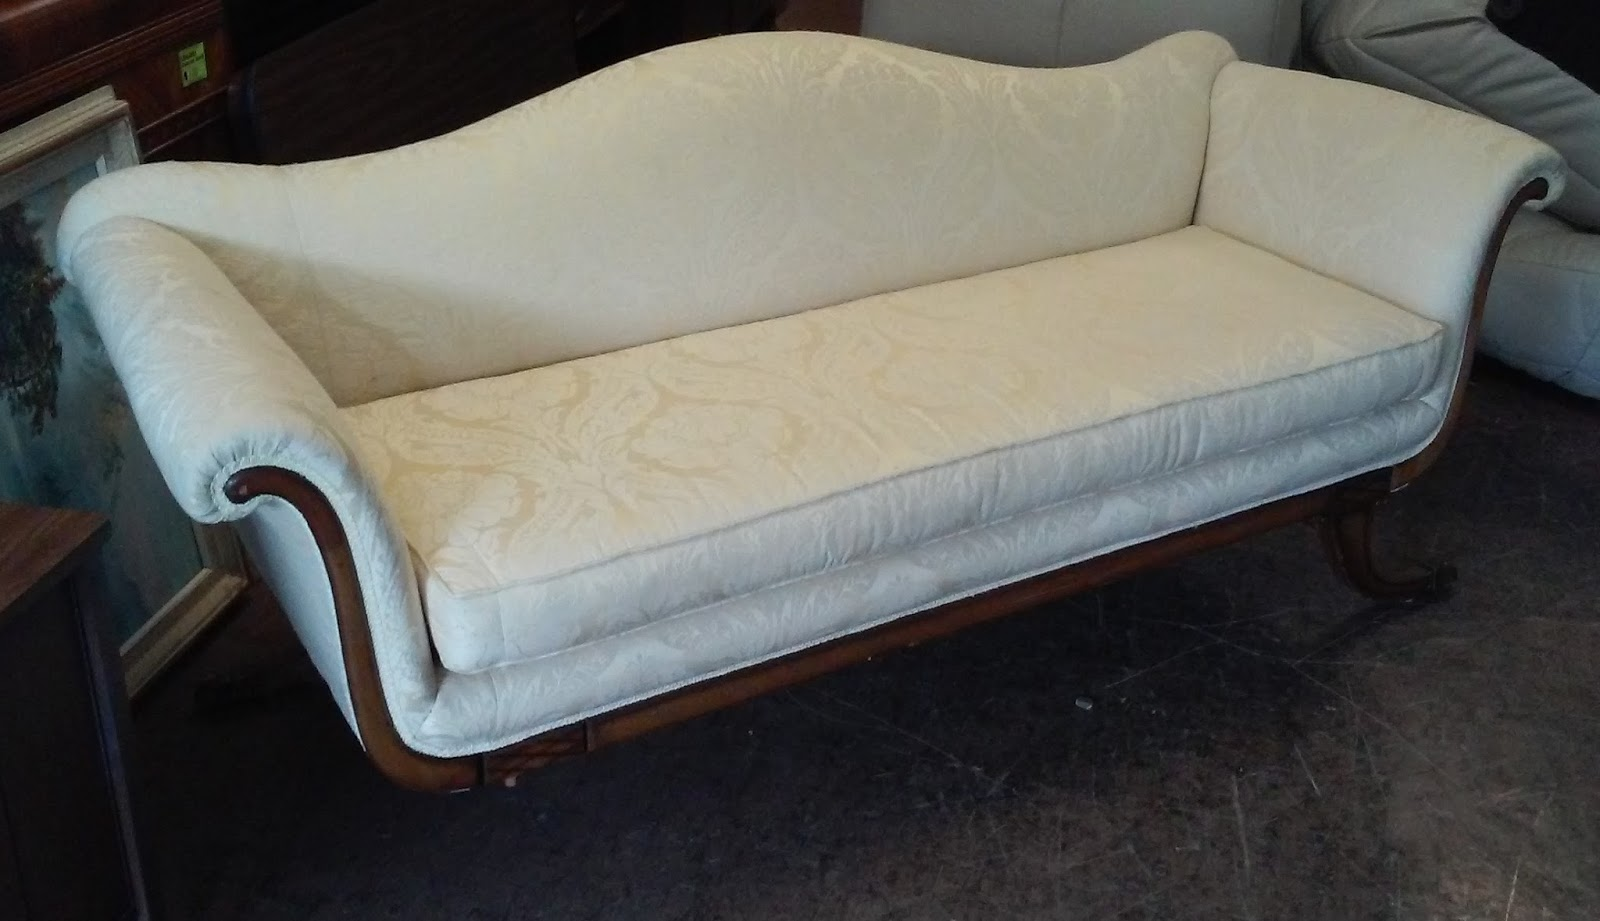 Uhuru furniture collectibles sold vintage reupholstered for Reupholstered chairs for sale